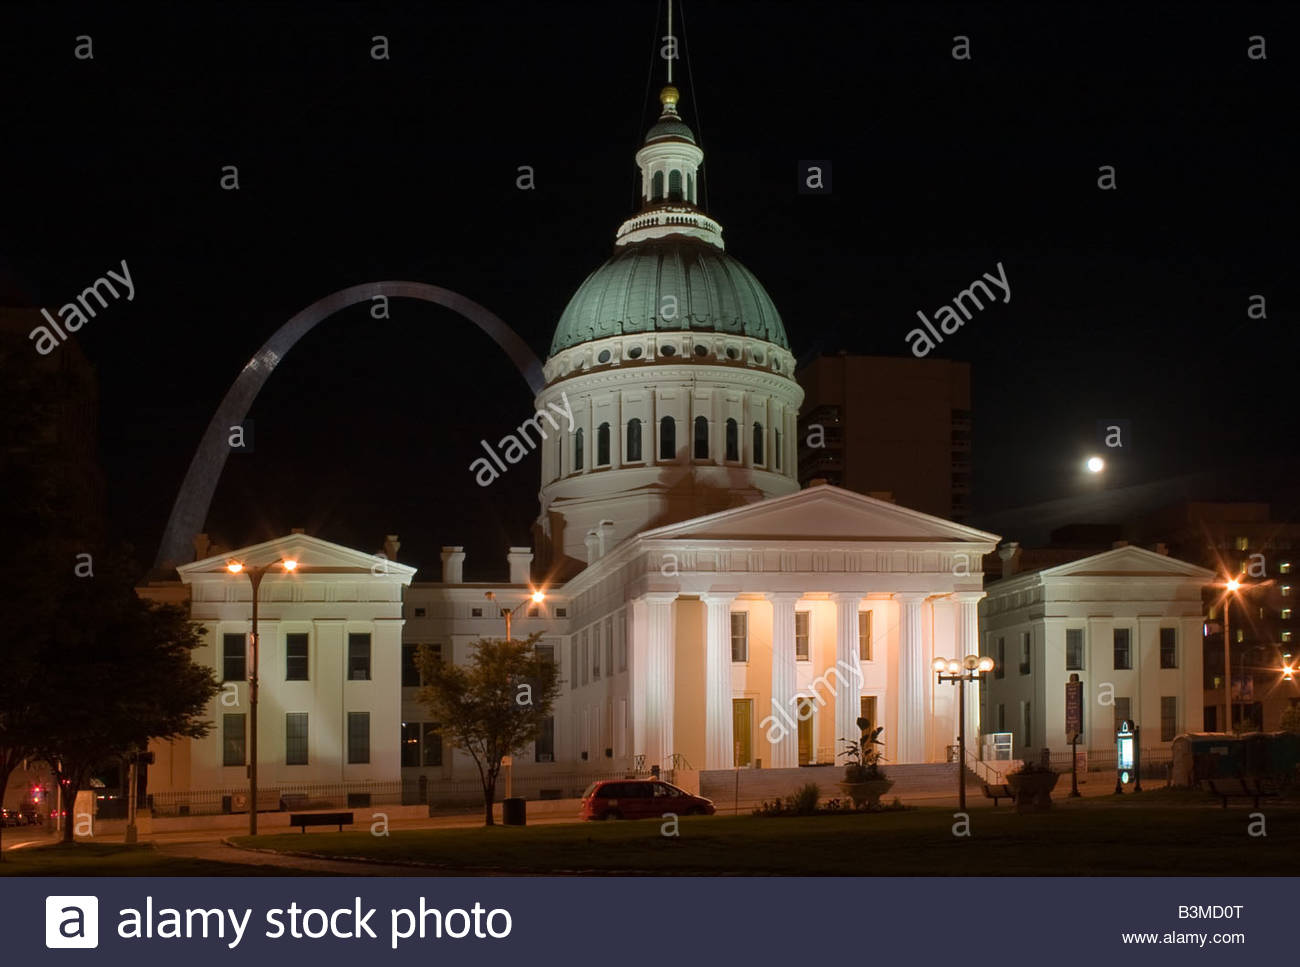 Old Courthouse in St Louis with Arch in the background Stock Photo 1300x967